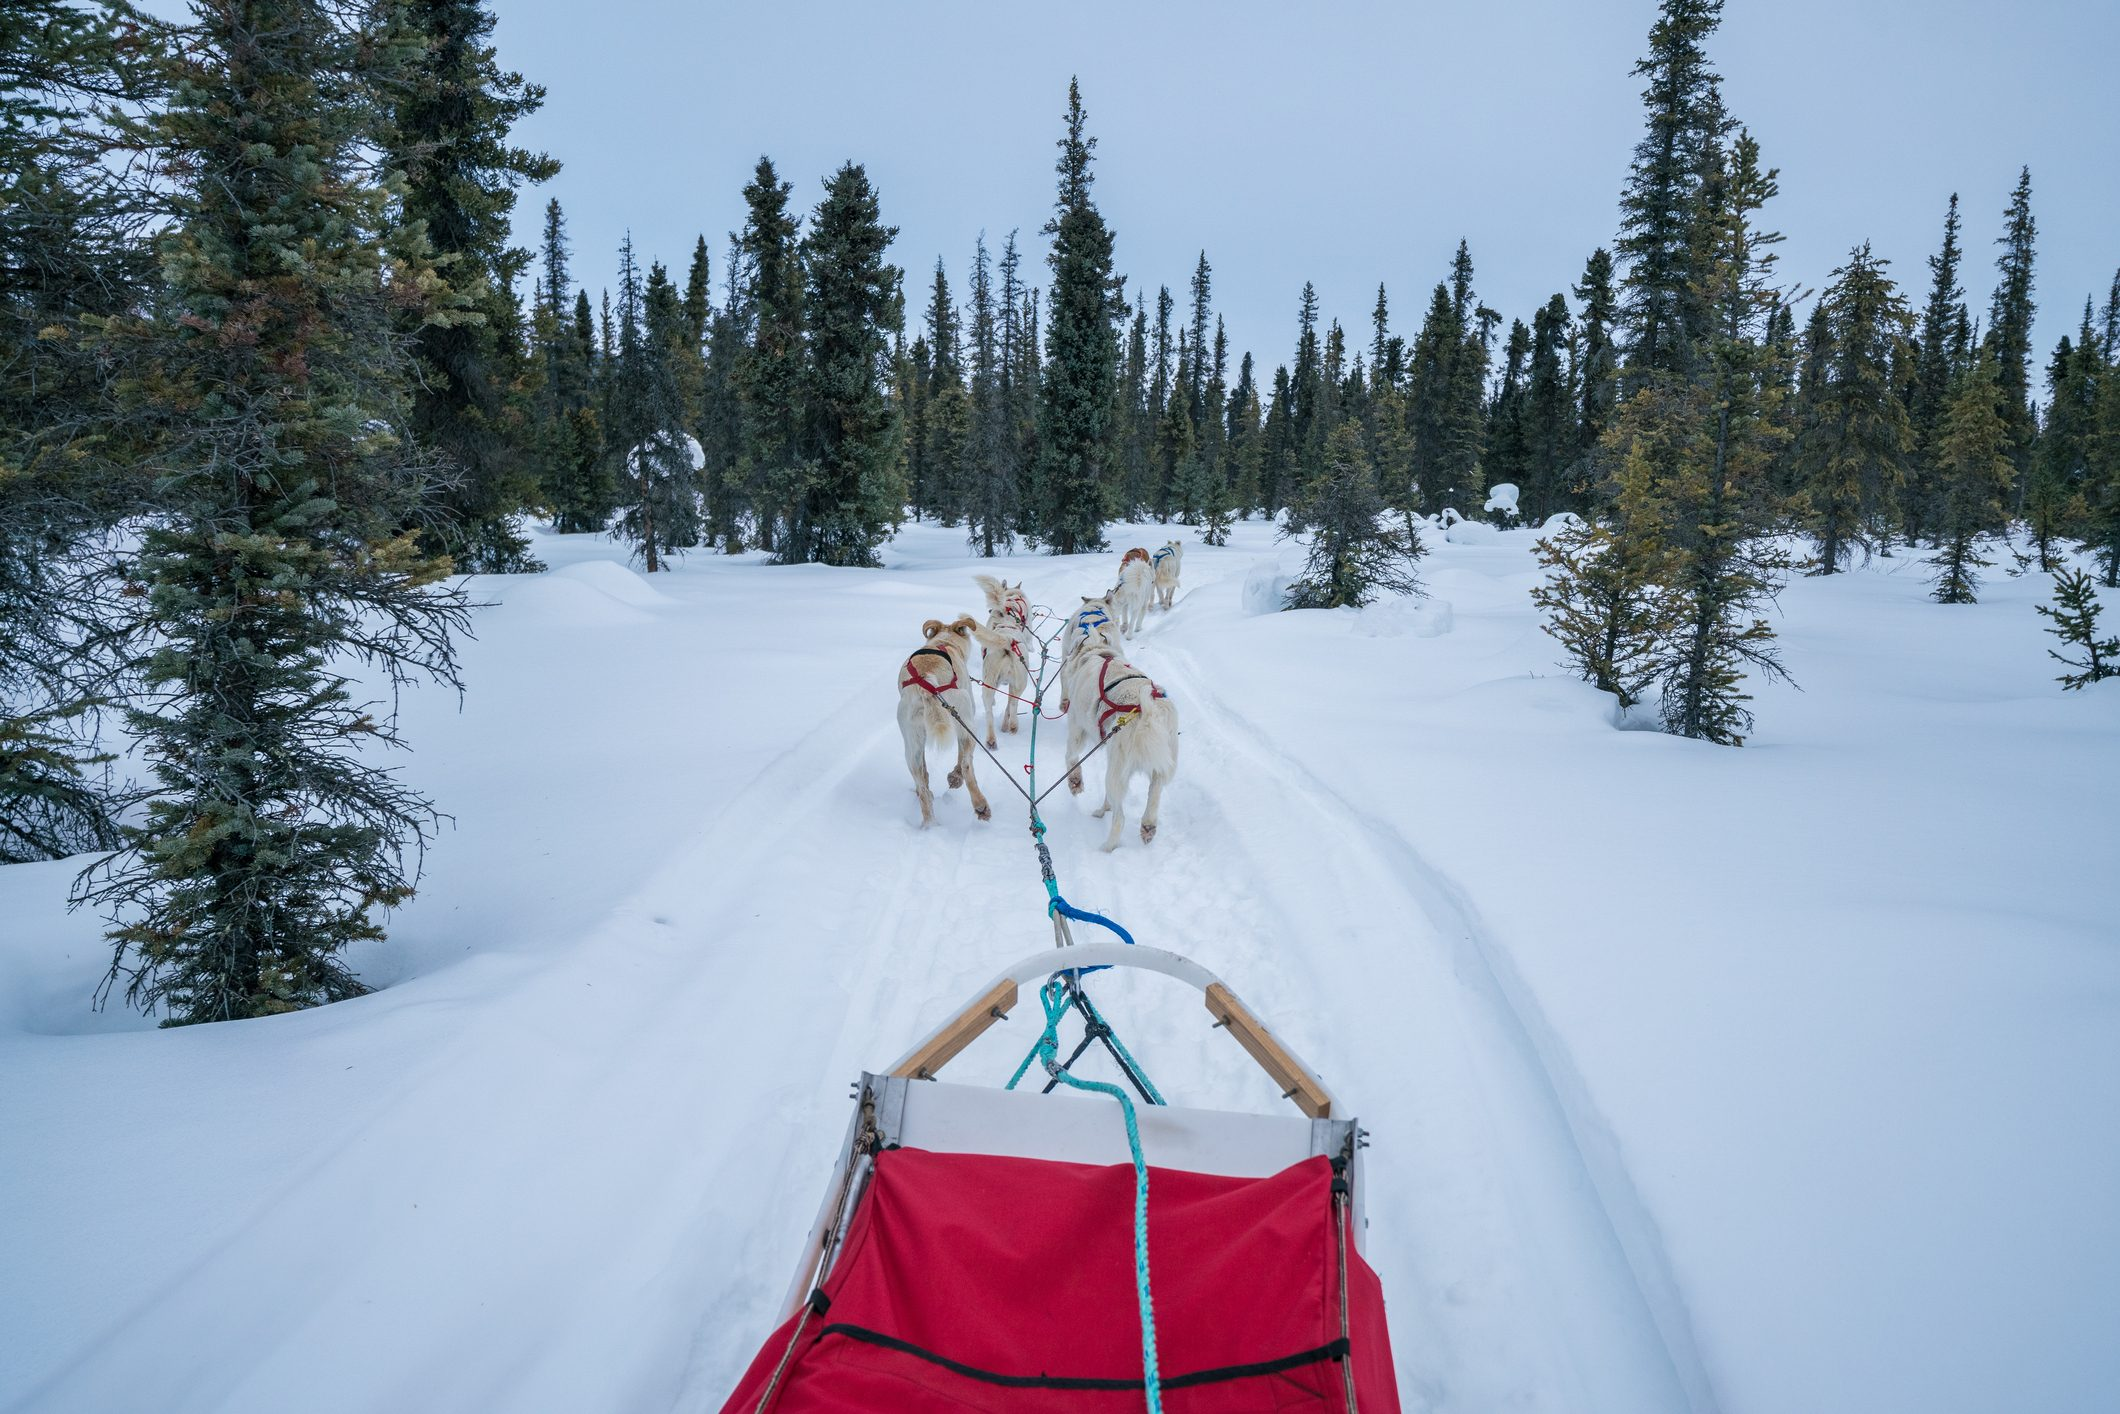 Alaskan Sled Dogs Pulling Red Sled on Snow Mushing Tour through Coldfoot, Alaska